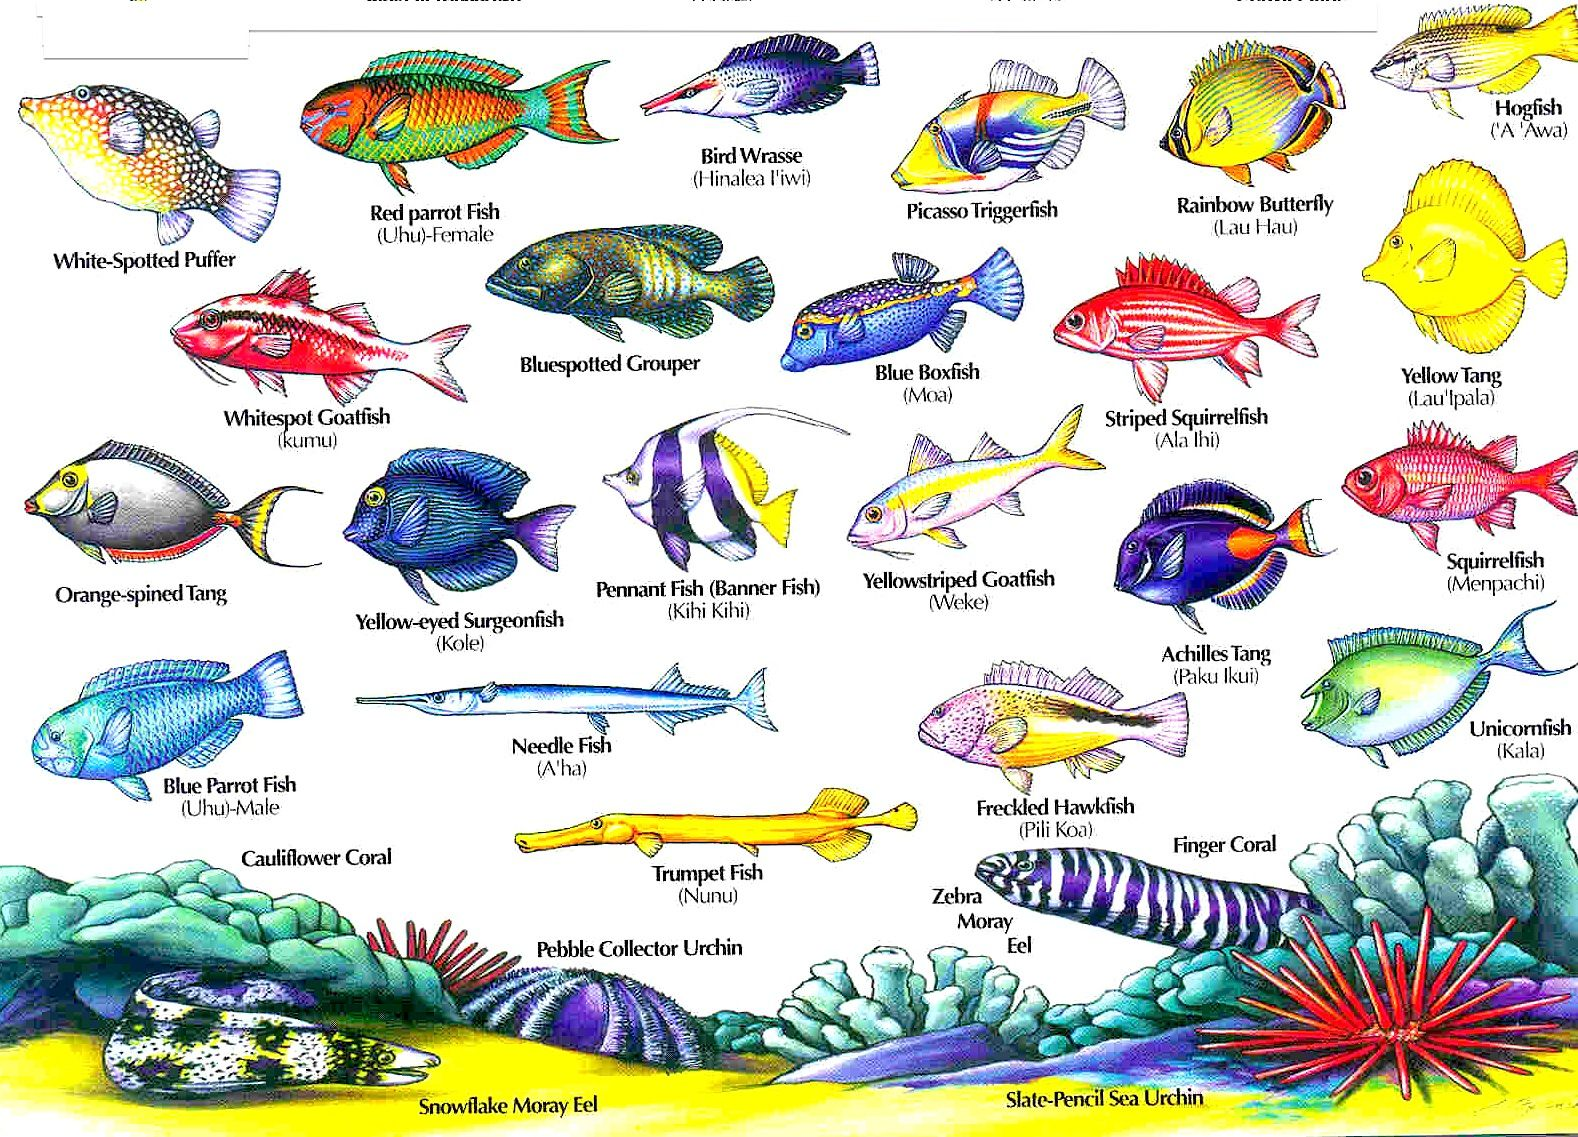 Freshwater fish in hawaii - Hawaii Reef Fish Guide With Hawaiian Names 2 Aloha Joe Blog